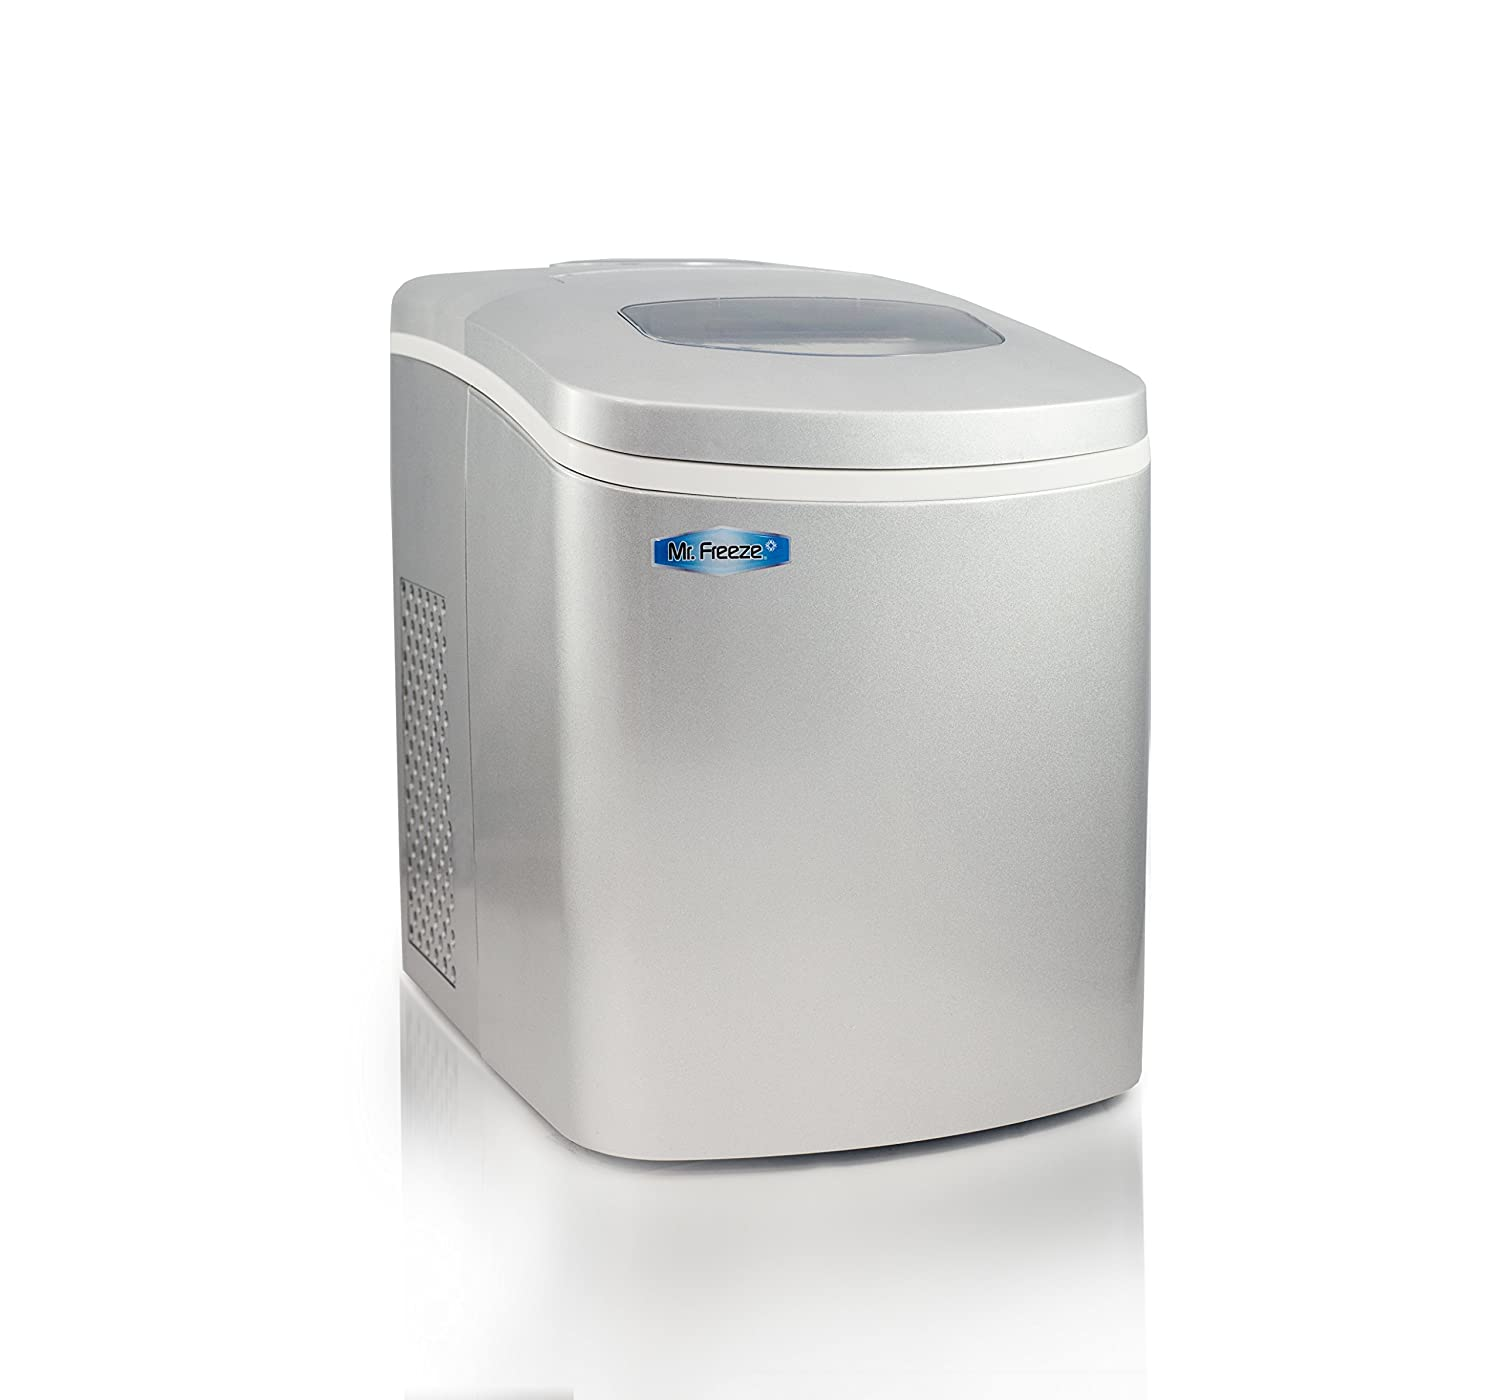 Mr. Freeze MIM-18SI Maxi-Matic Portable Automatic Ice Maker with Lid, Silver